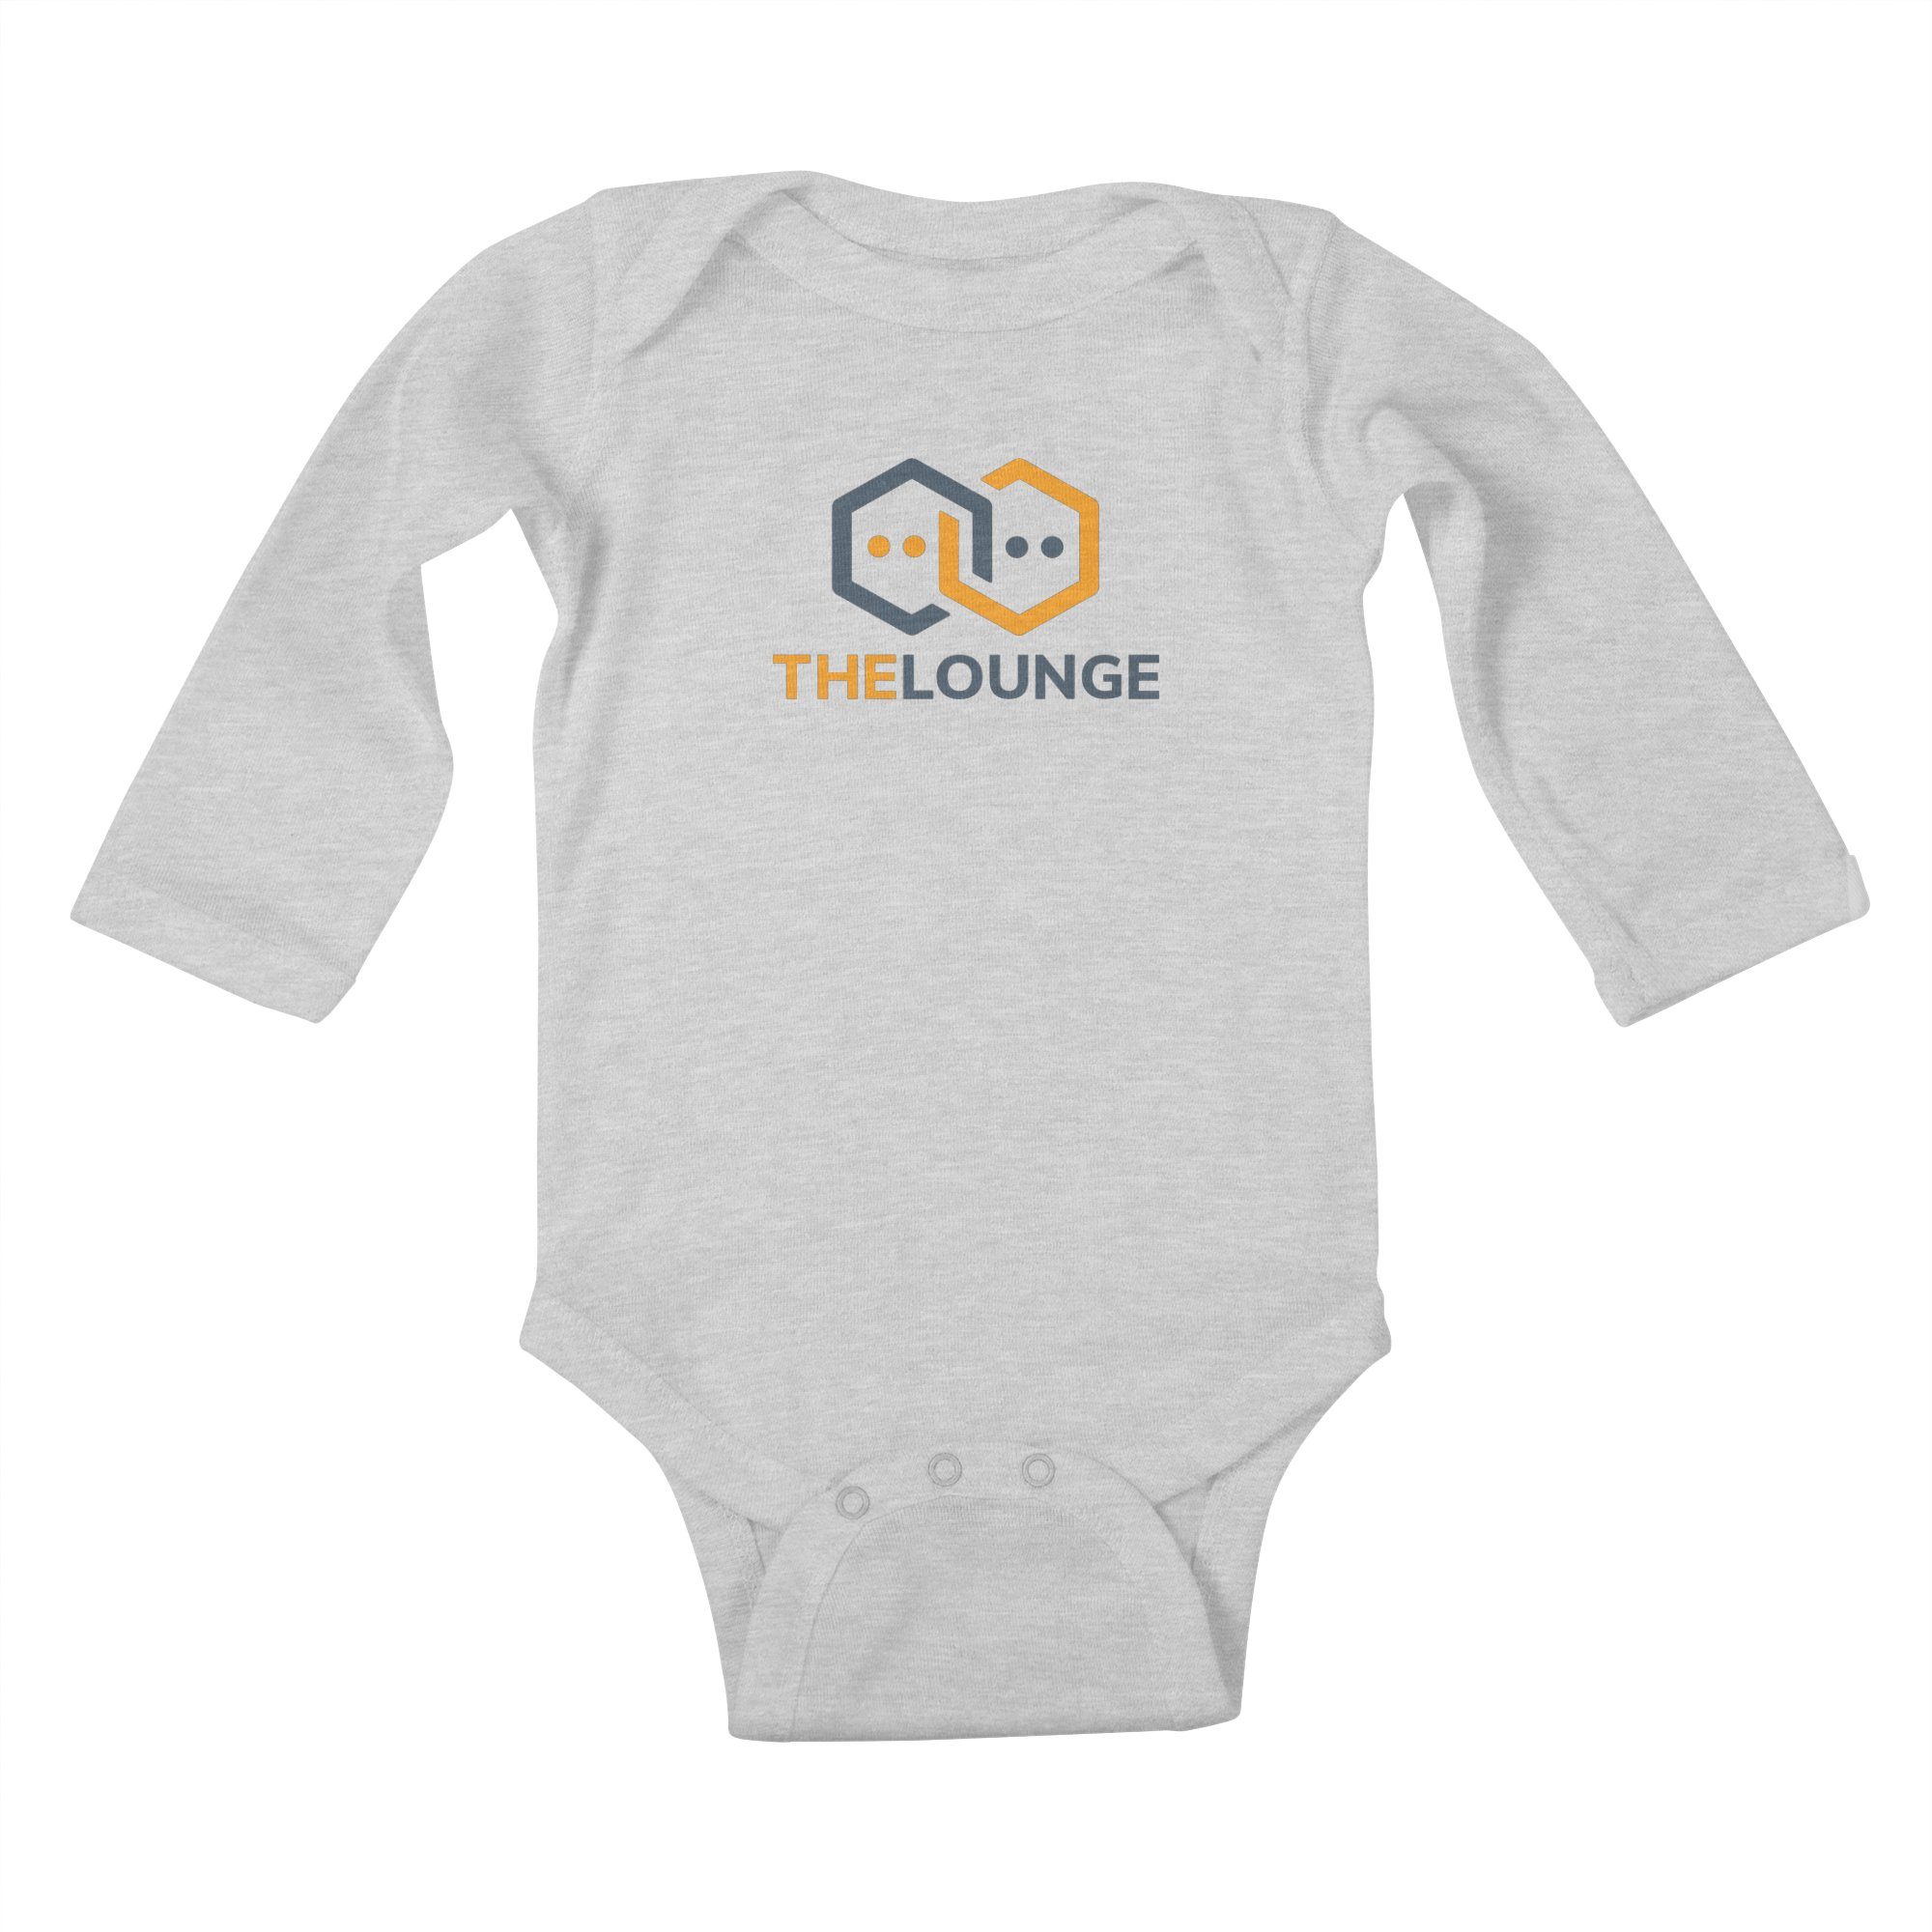 Grey baby bodysuit with The Lounge logo